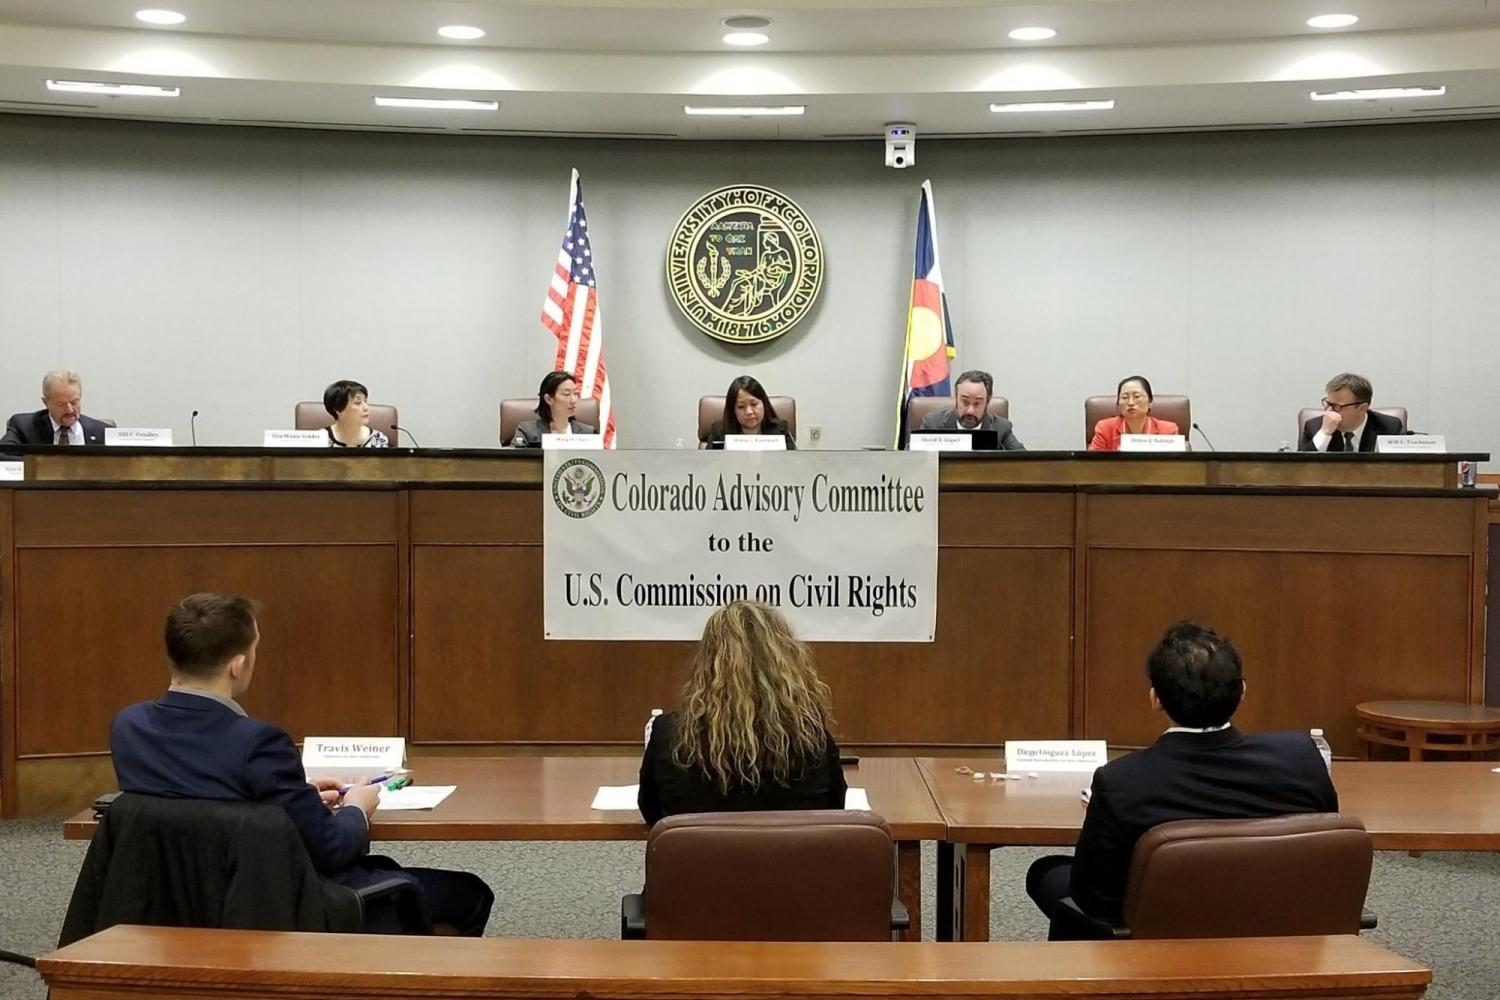 Briefing on USCIS Backlog on Citiizenship and naturalization applications by Colorado Advisory Committee to the US Commission on Civil Rights (Feb 22, 2019)